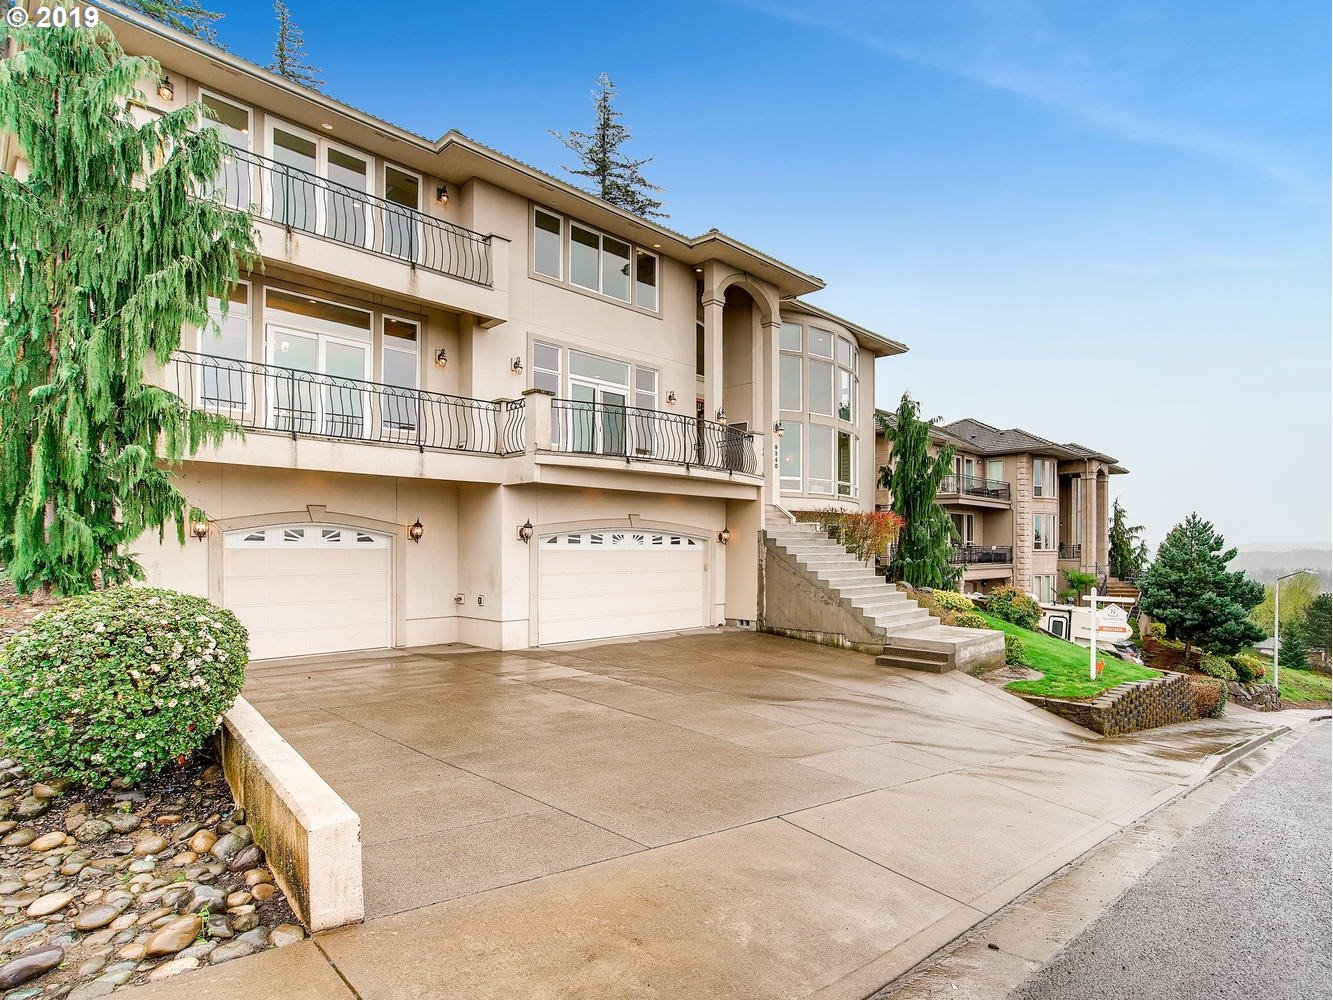 Great, bright and Happy home in Happy Valley! Close to the 205 Freeway. Greatly maintained, private with only Gated Access, and plenty of space for Entertaining!